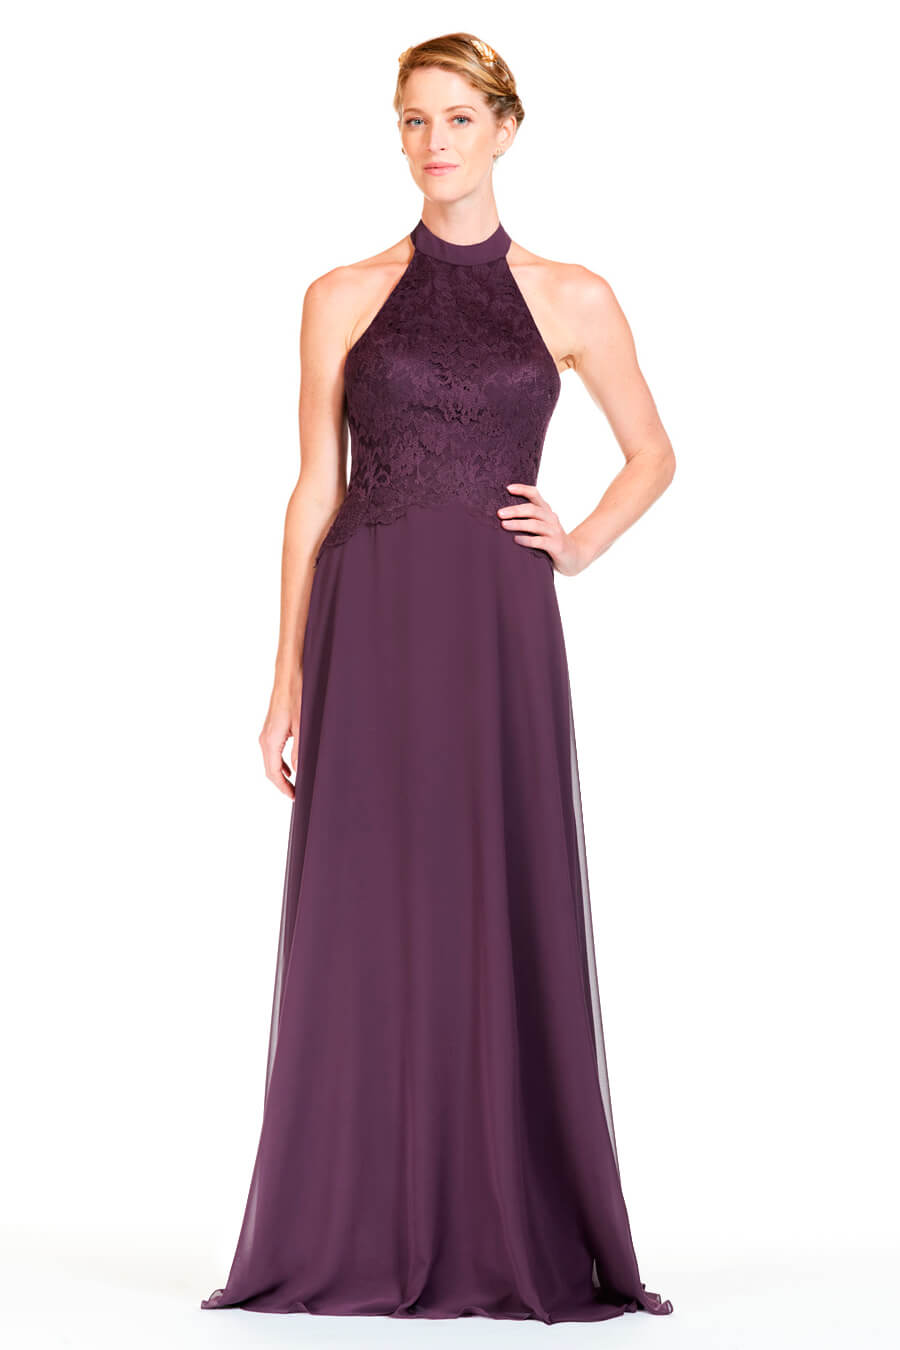 STYLE: 1820 (available short 1820-s) | Bridesmaid Dresses, Evening ...